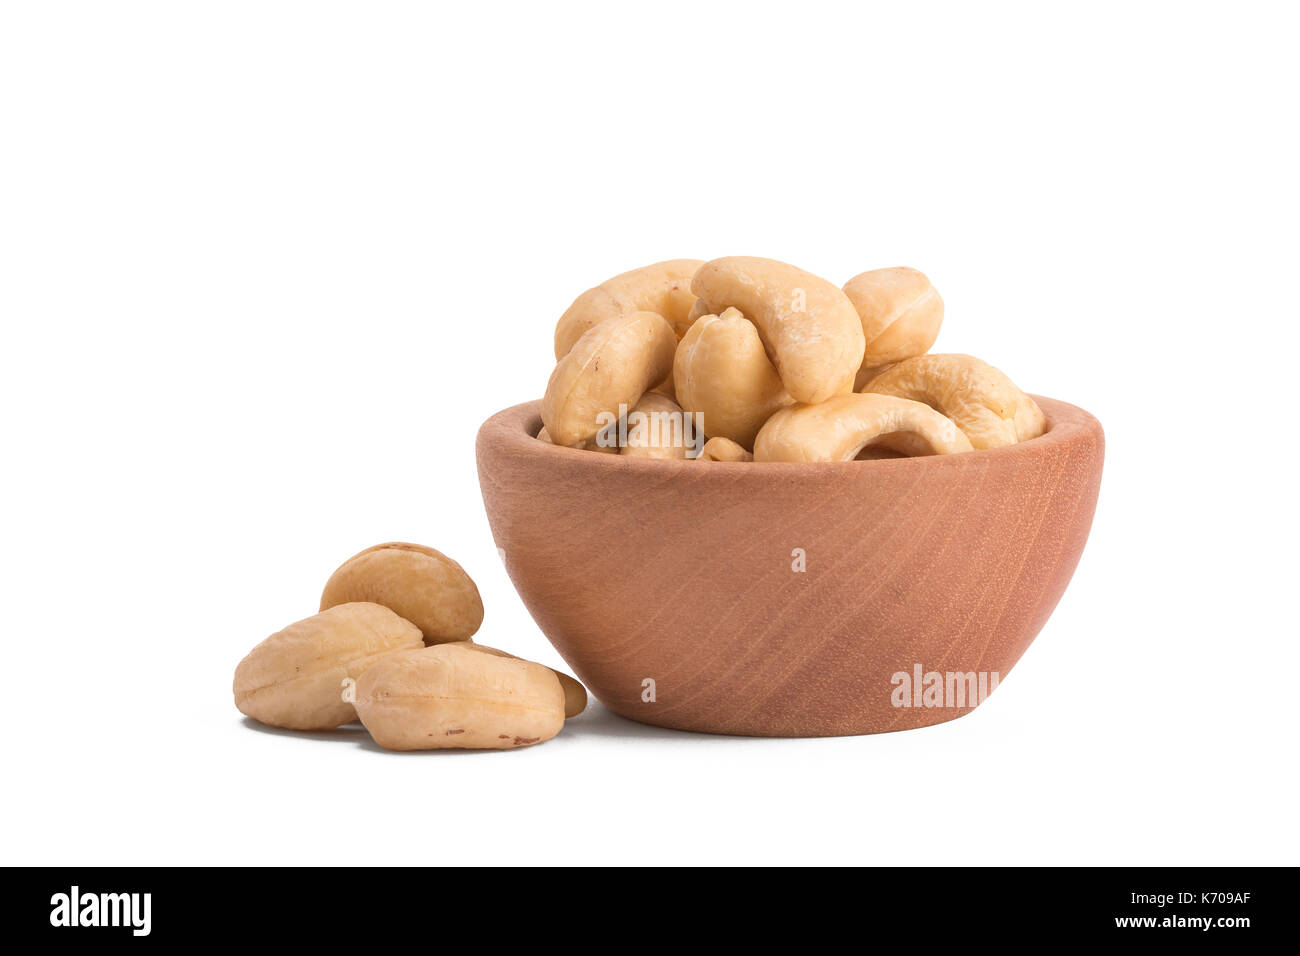 Bowl with cashews on a white background. Stock Photo